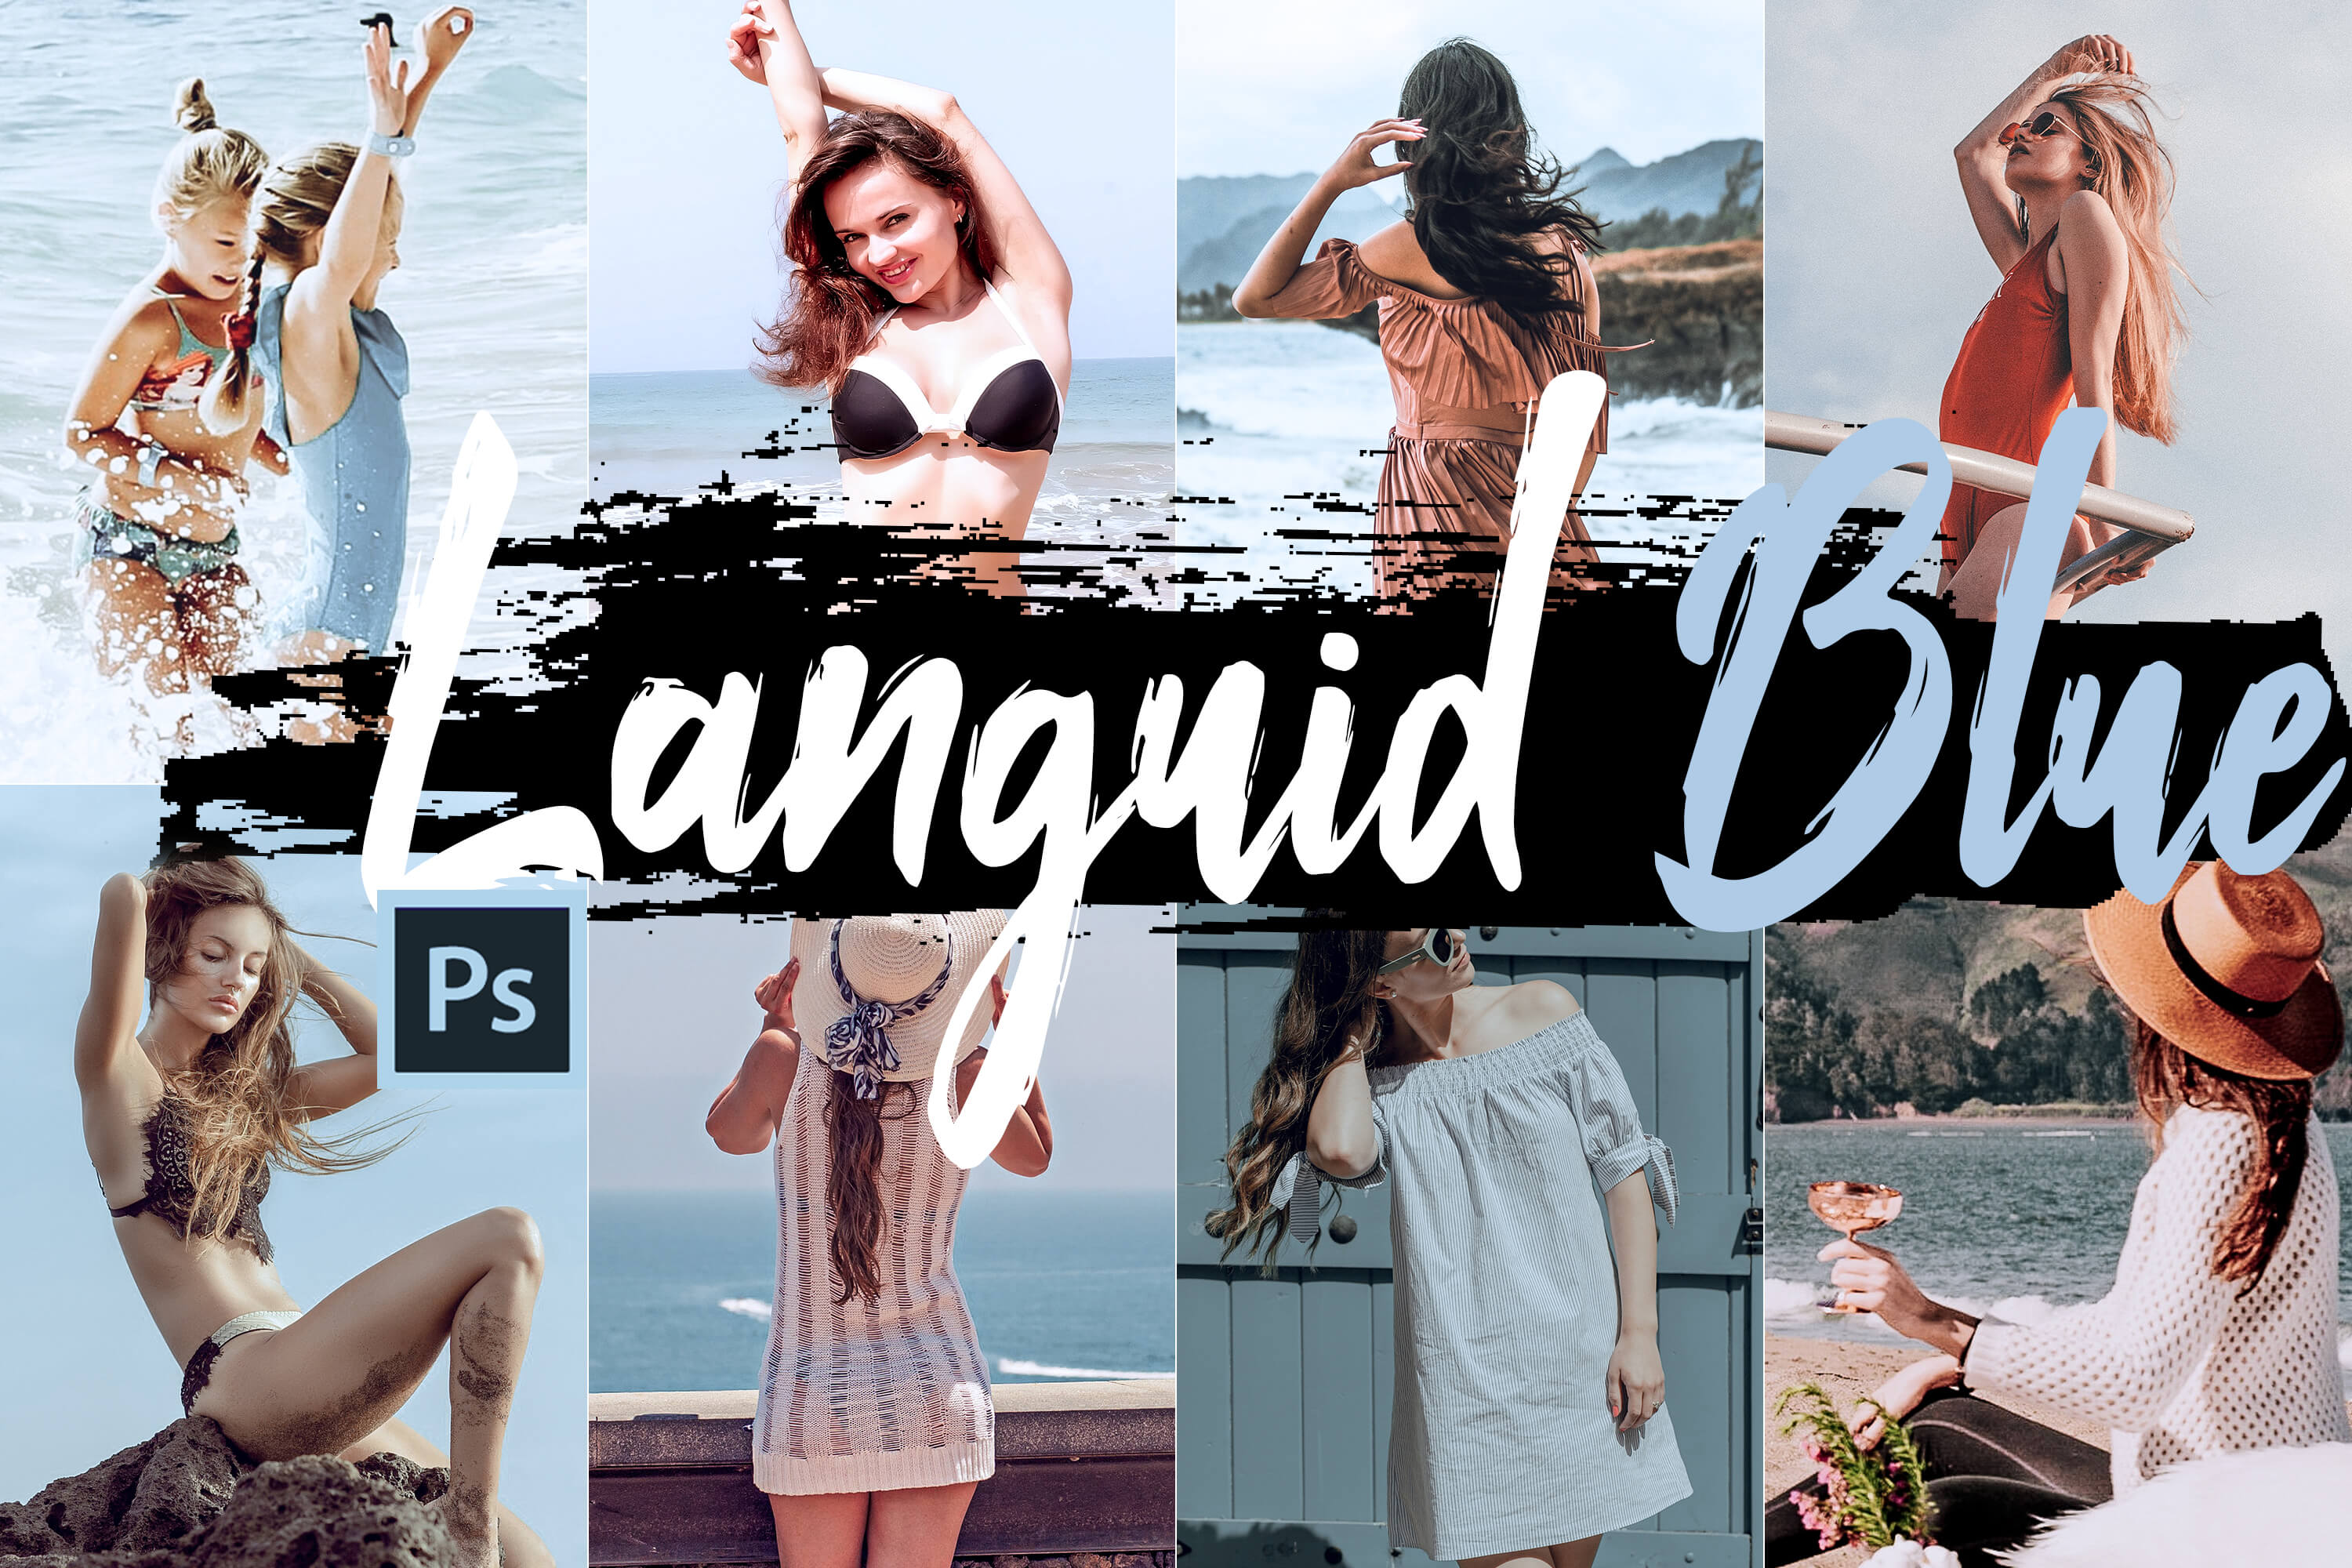 Neo Languid Blue Theme Color Grading photoshop actions example image 1